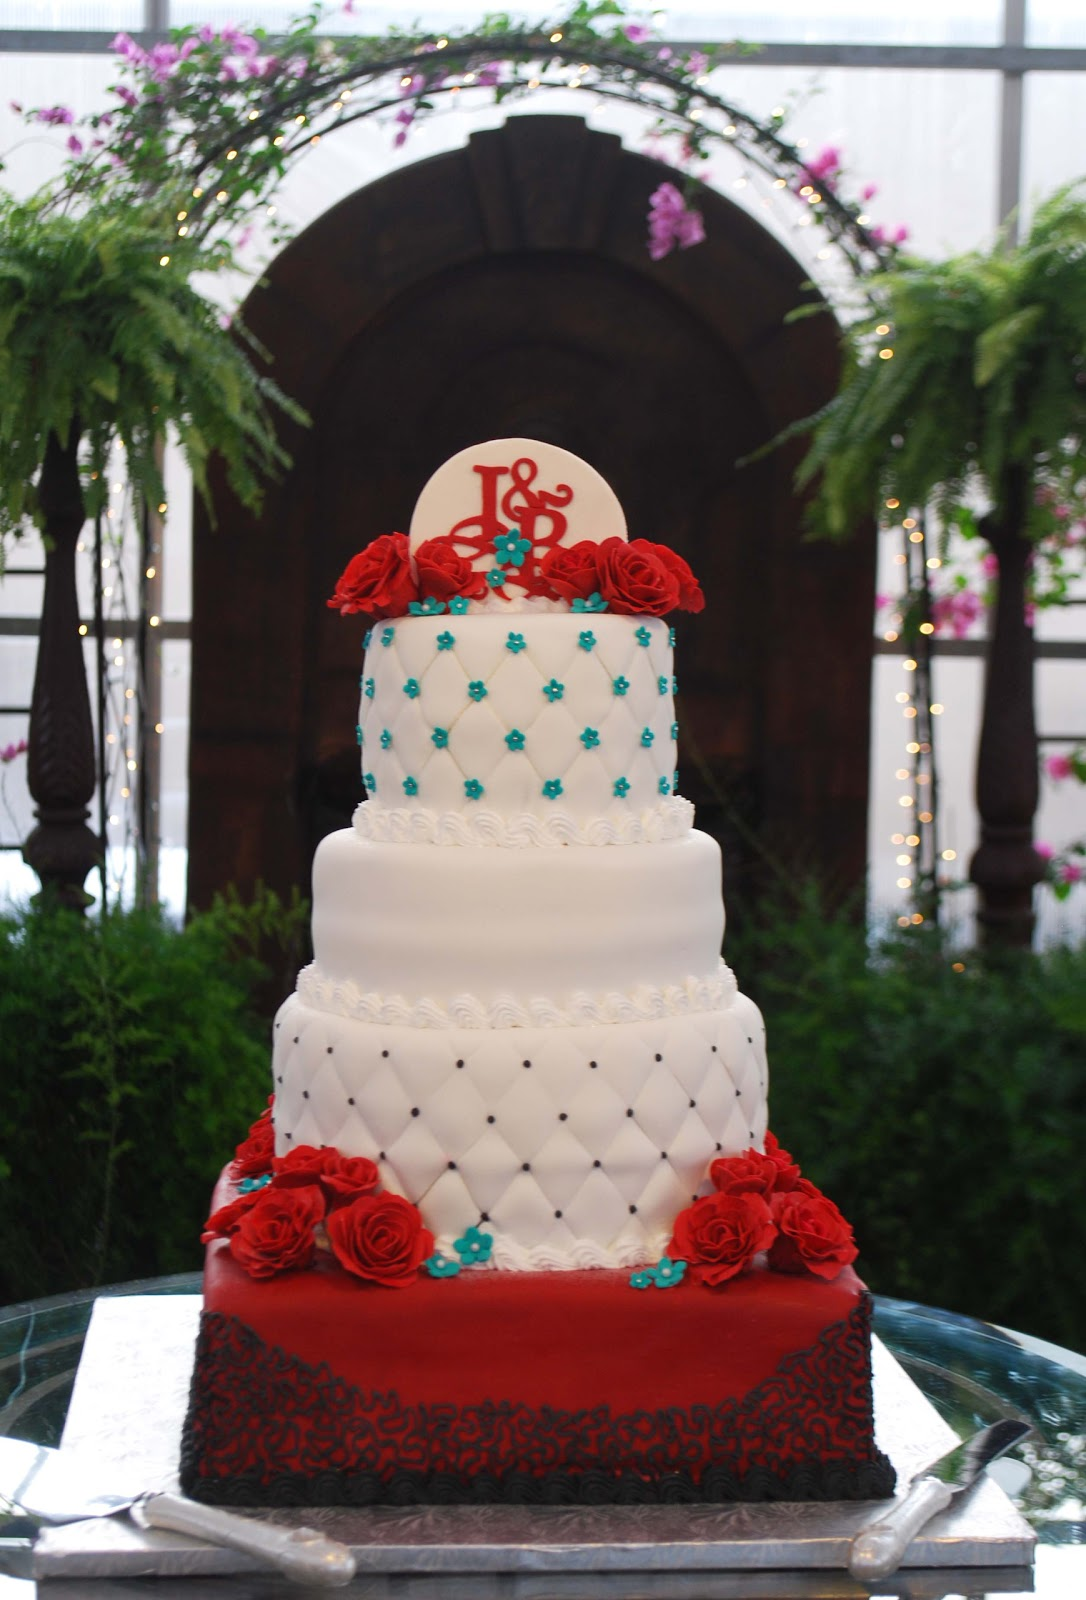 2 Layer Cake Designs http://red-wedding-bouquets1117.blogspot.com/2011/12/two-layer-wedding-cake-ideas.html